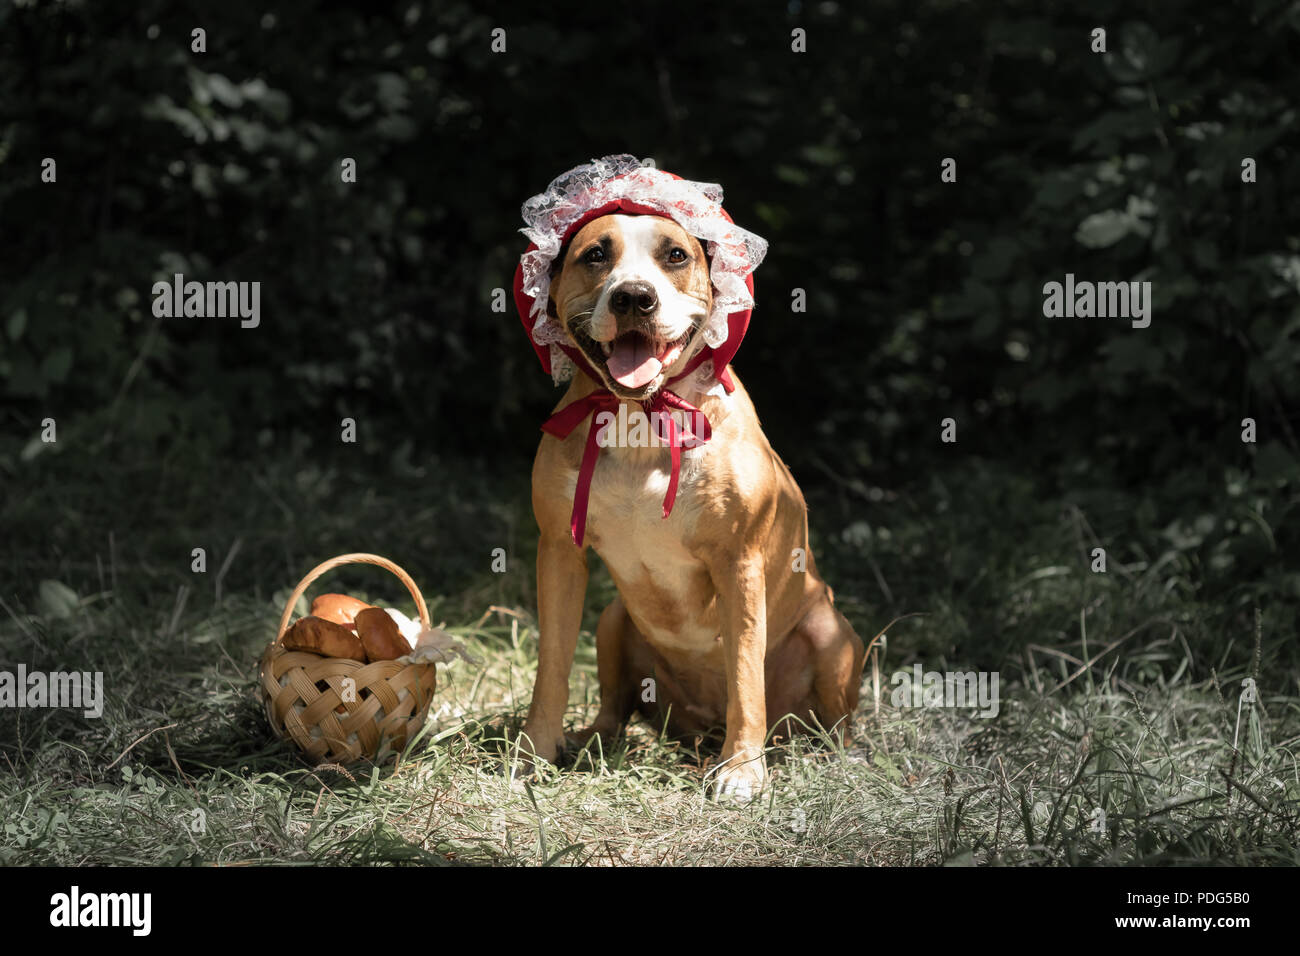 Dog in halloween fairy-tale costume of little red cap. Cute puppy poses in